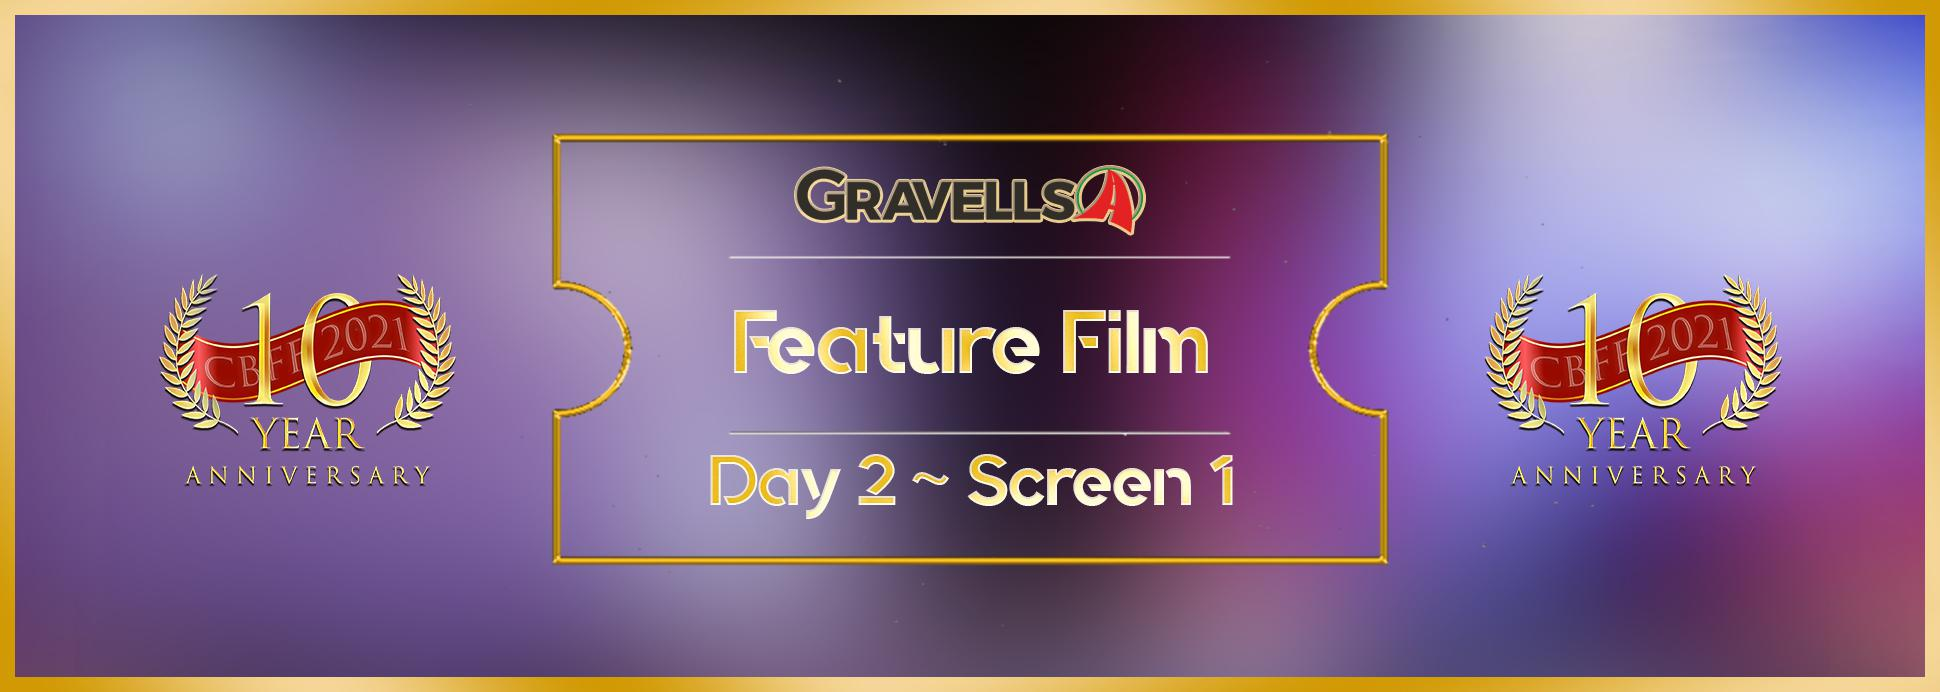 Day 2, Screen 1: Feature